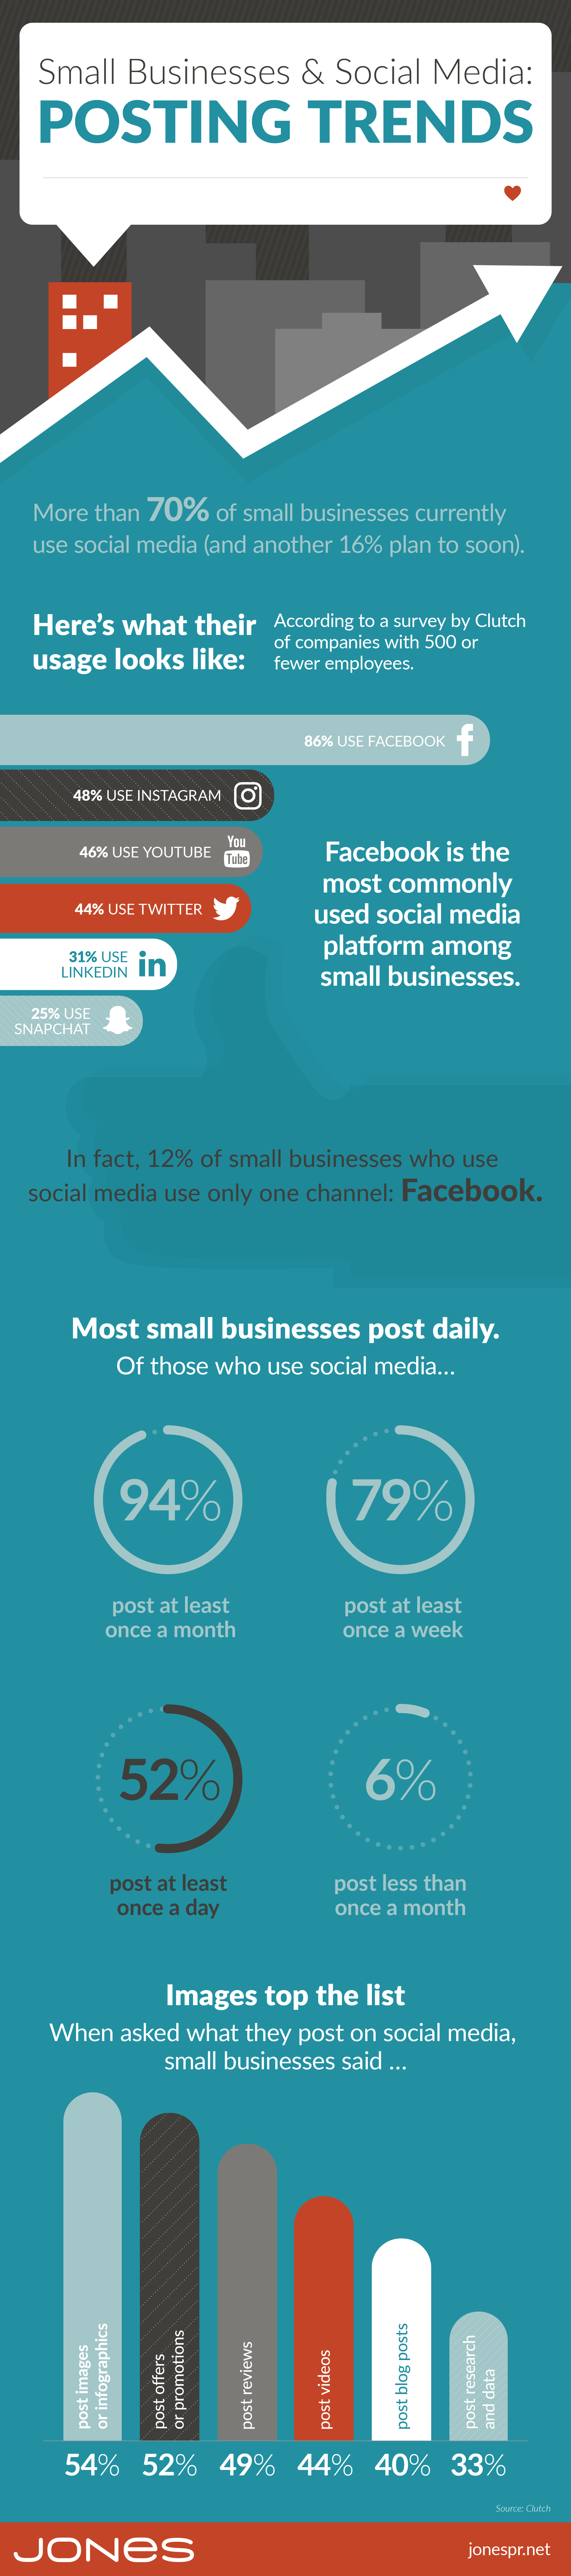 jones-infographic-small-biz-social-media-posting-trends-v2-01 copy